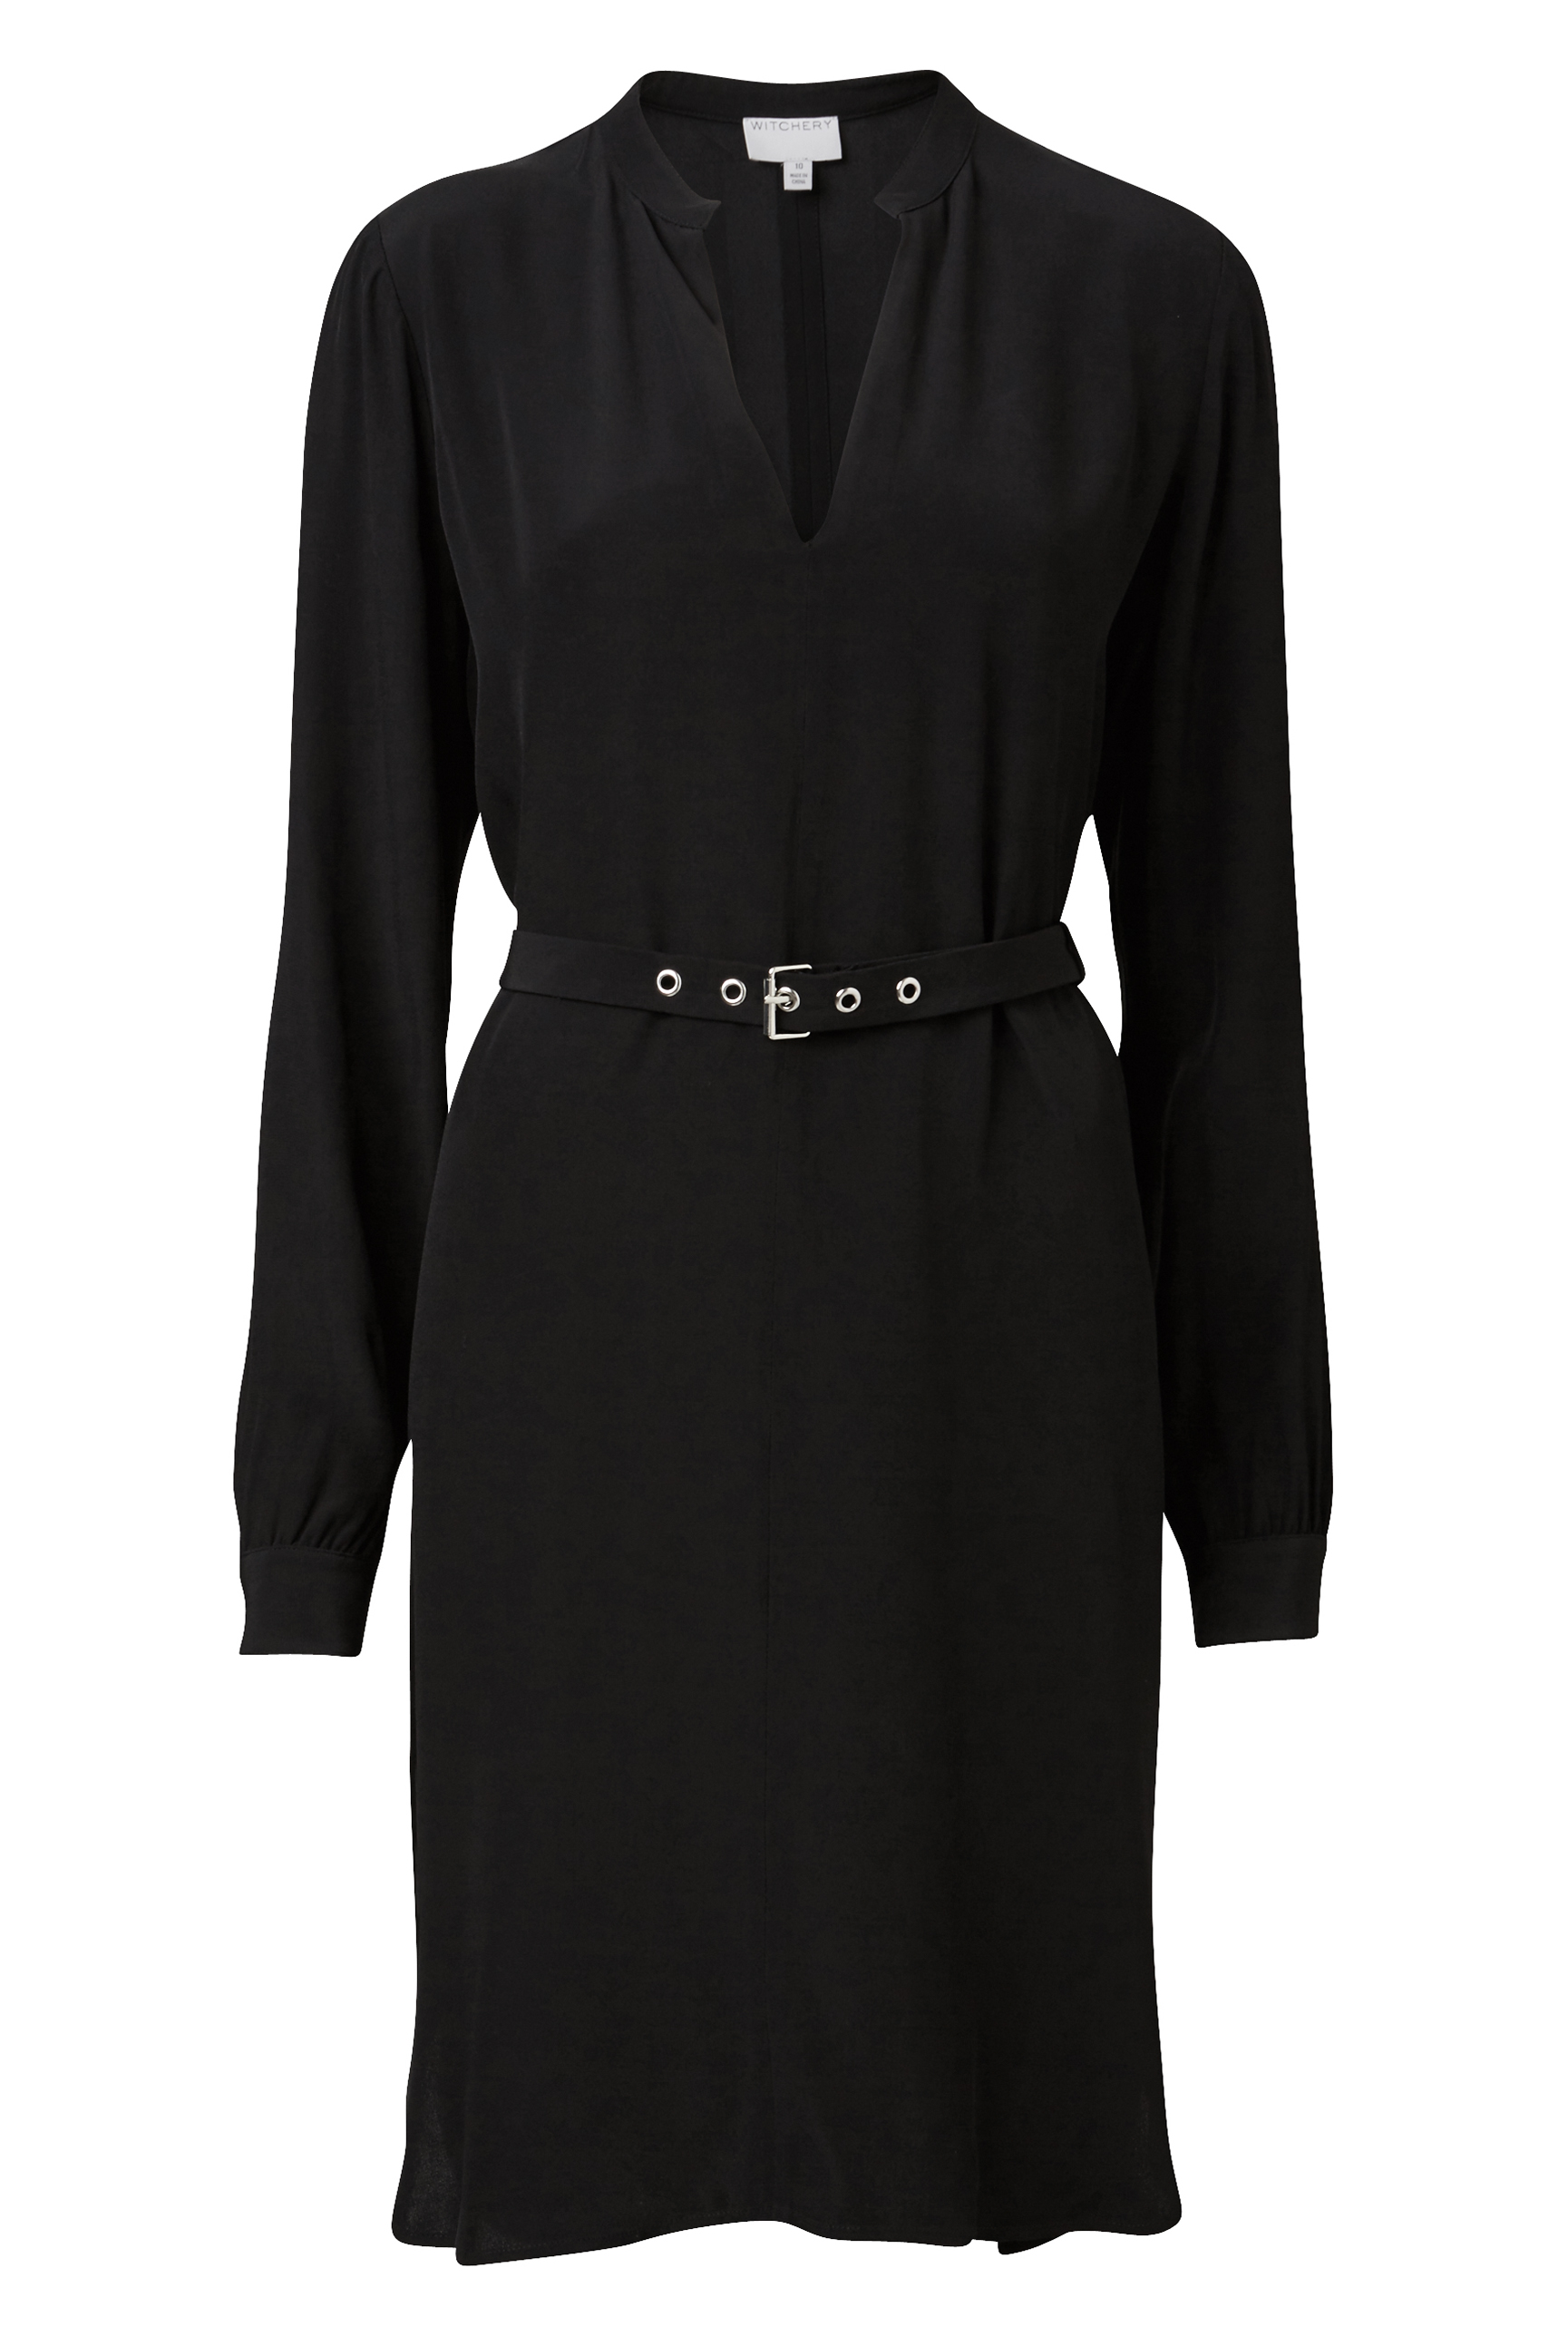 60193733_Witchery V Front Shirt Dress, RRP$149.90